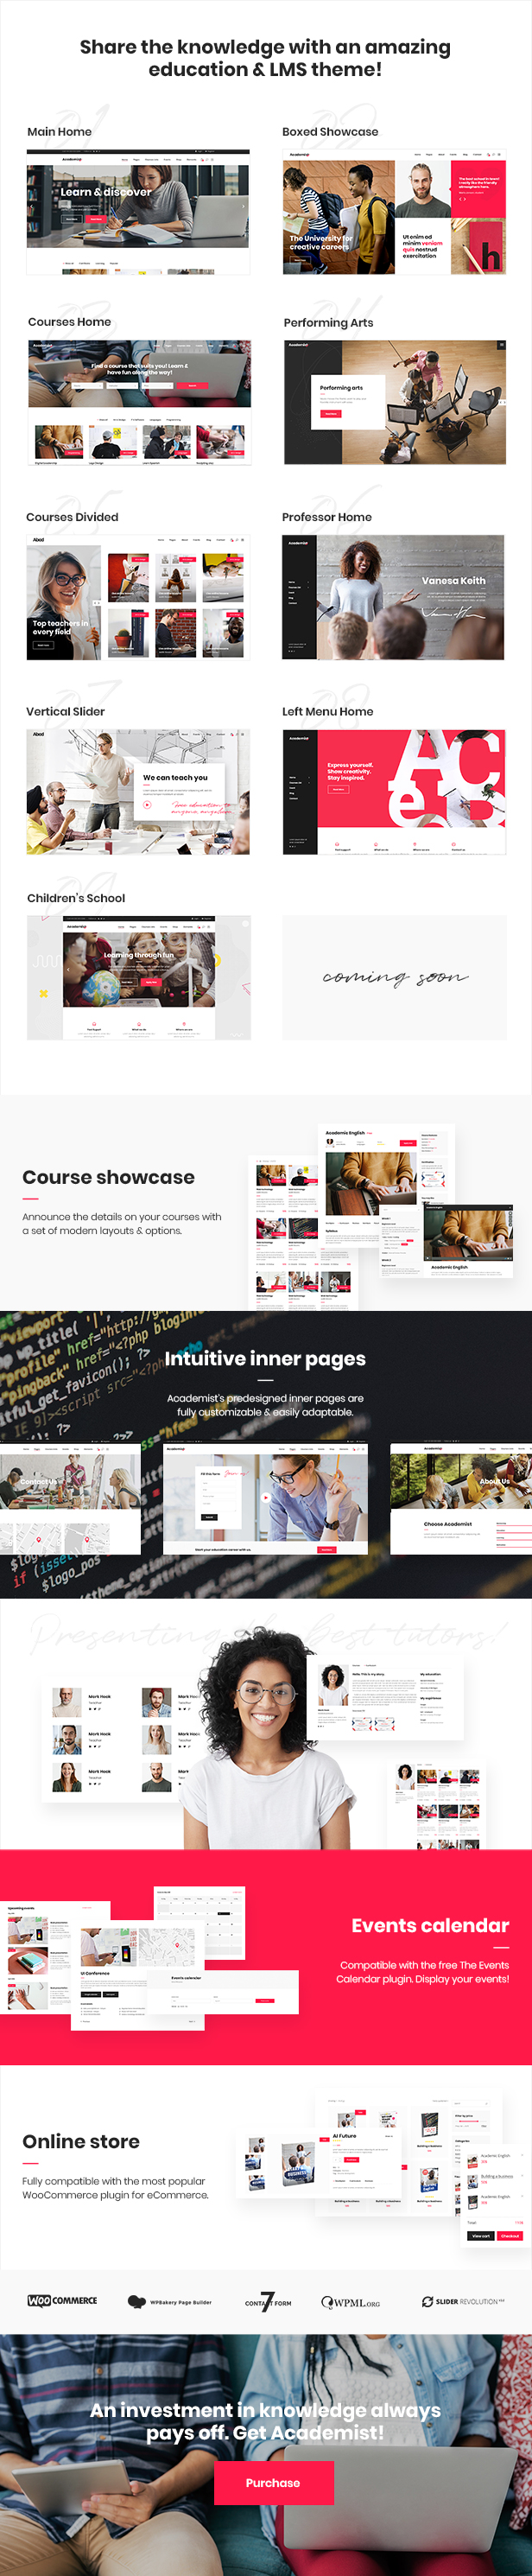 Academist - Education & Learning Management System Theme - 1